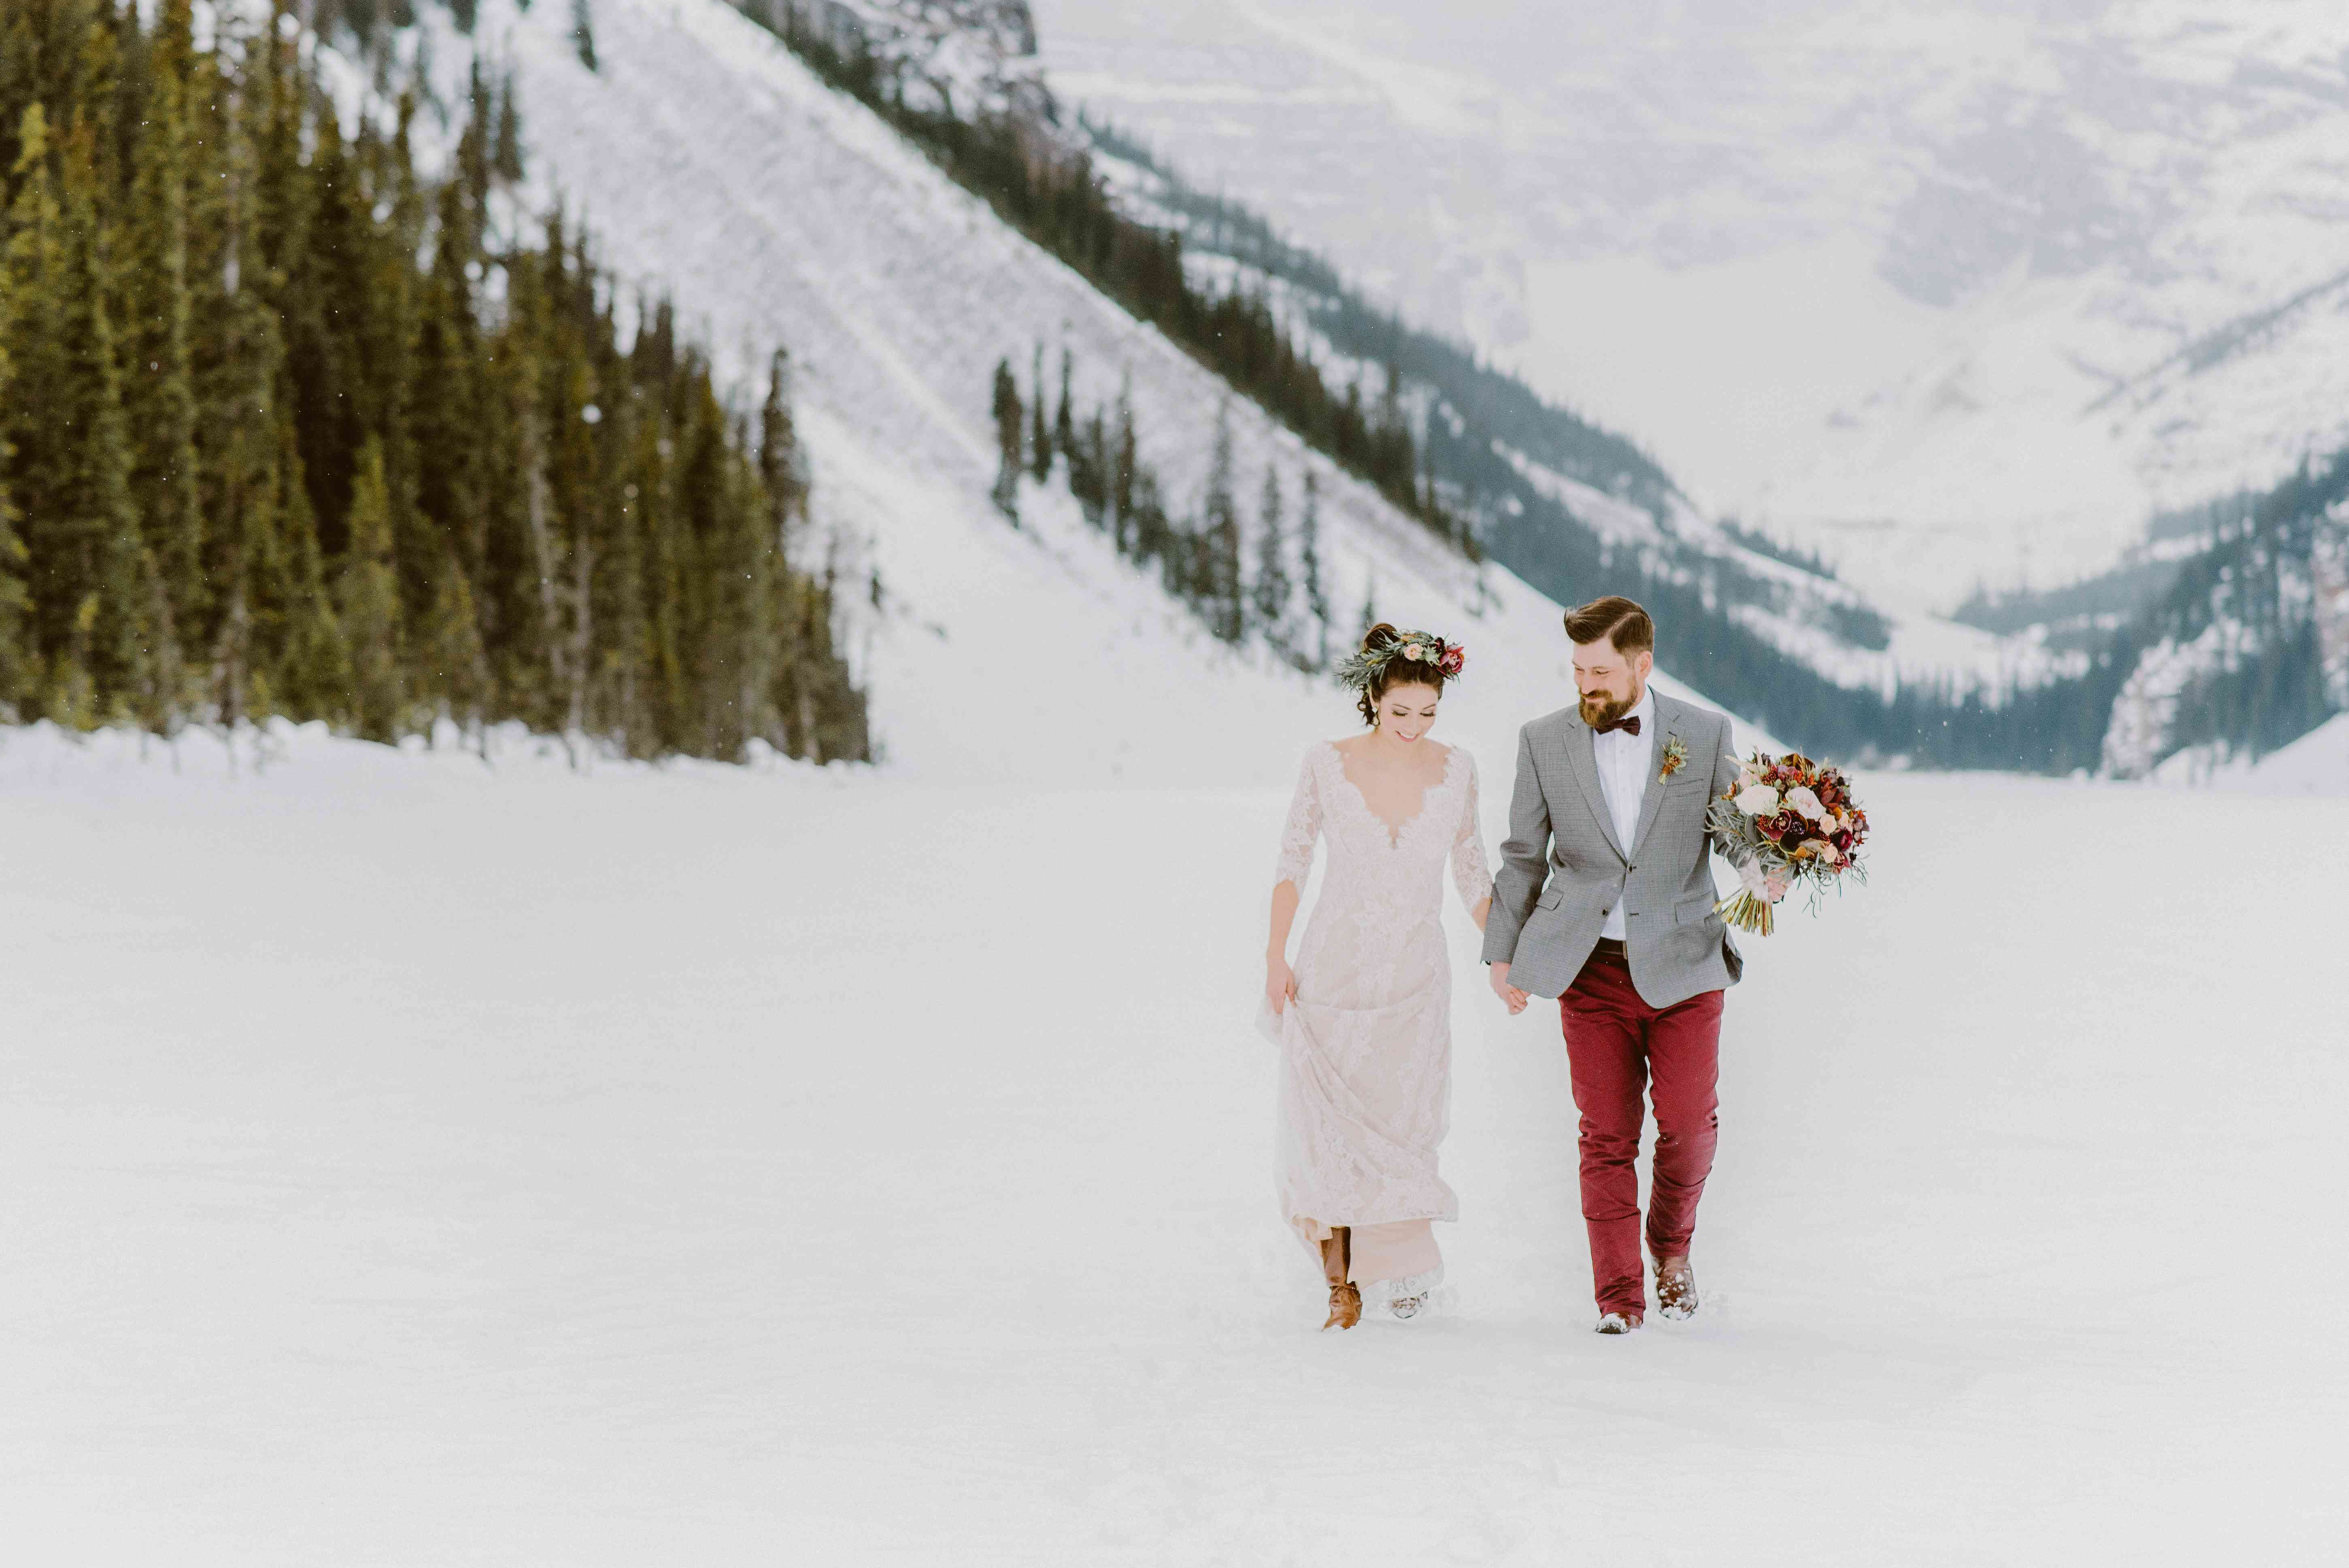 Bride and groom hand in hand walking through a snowy field with mountains in the background